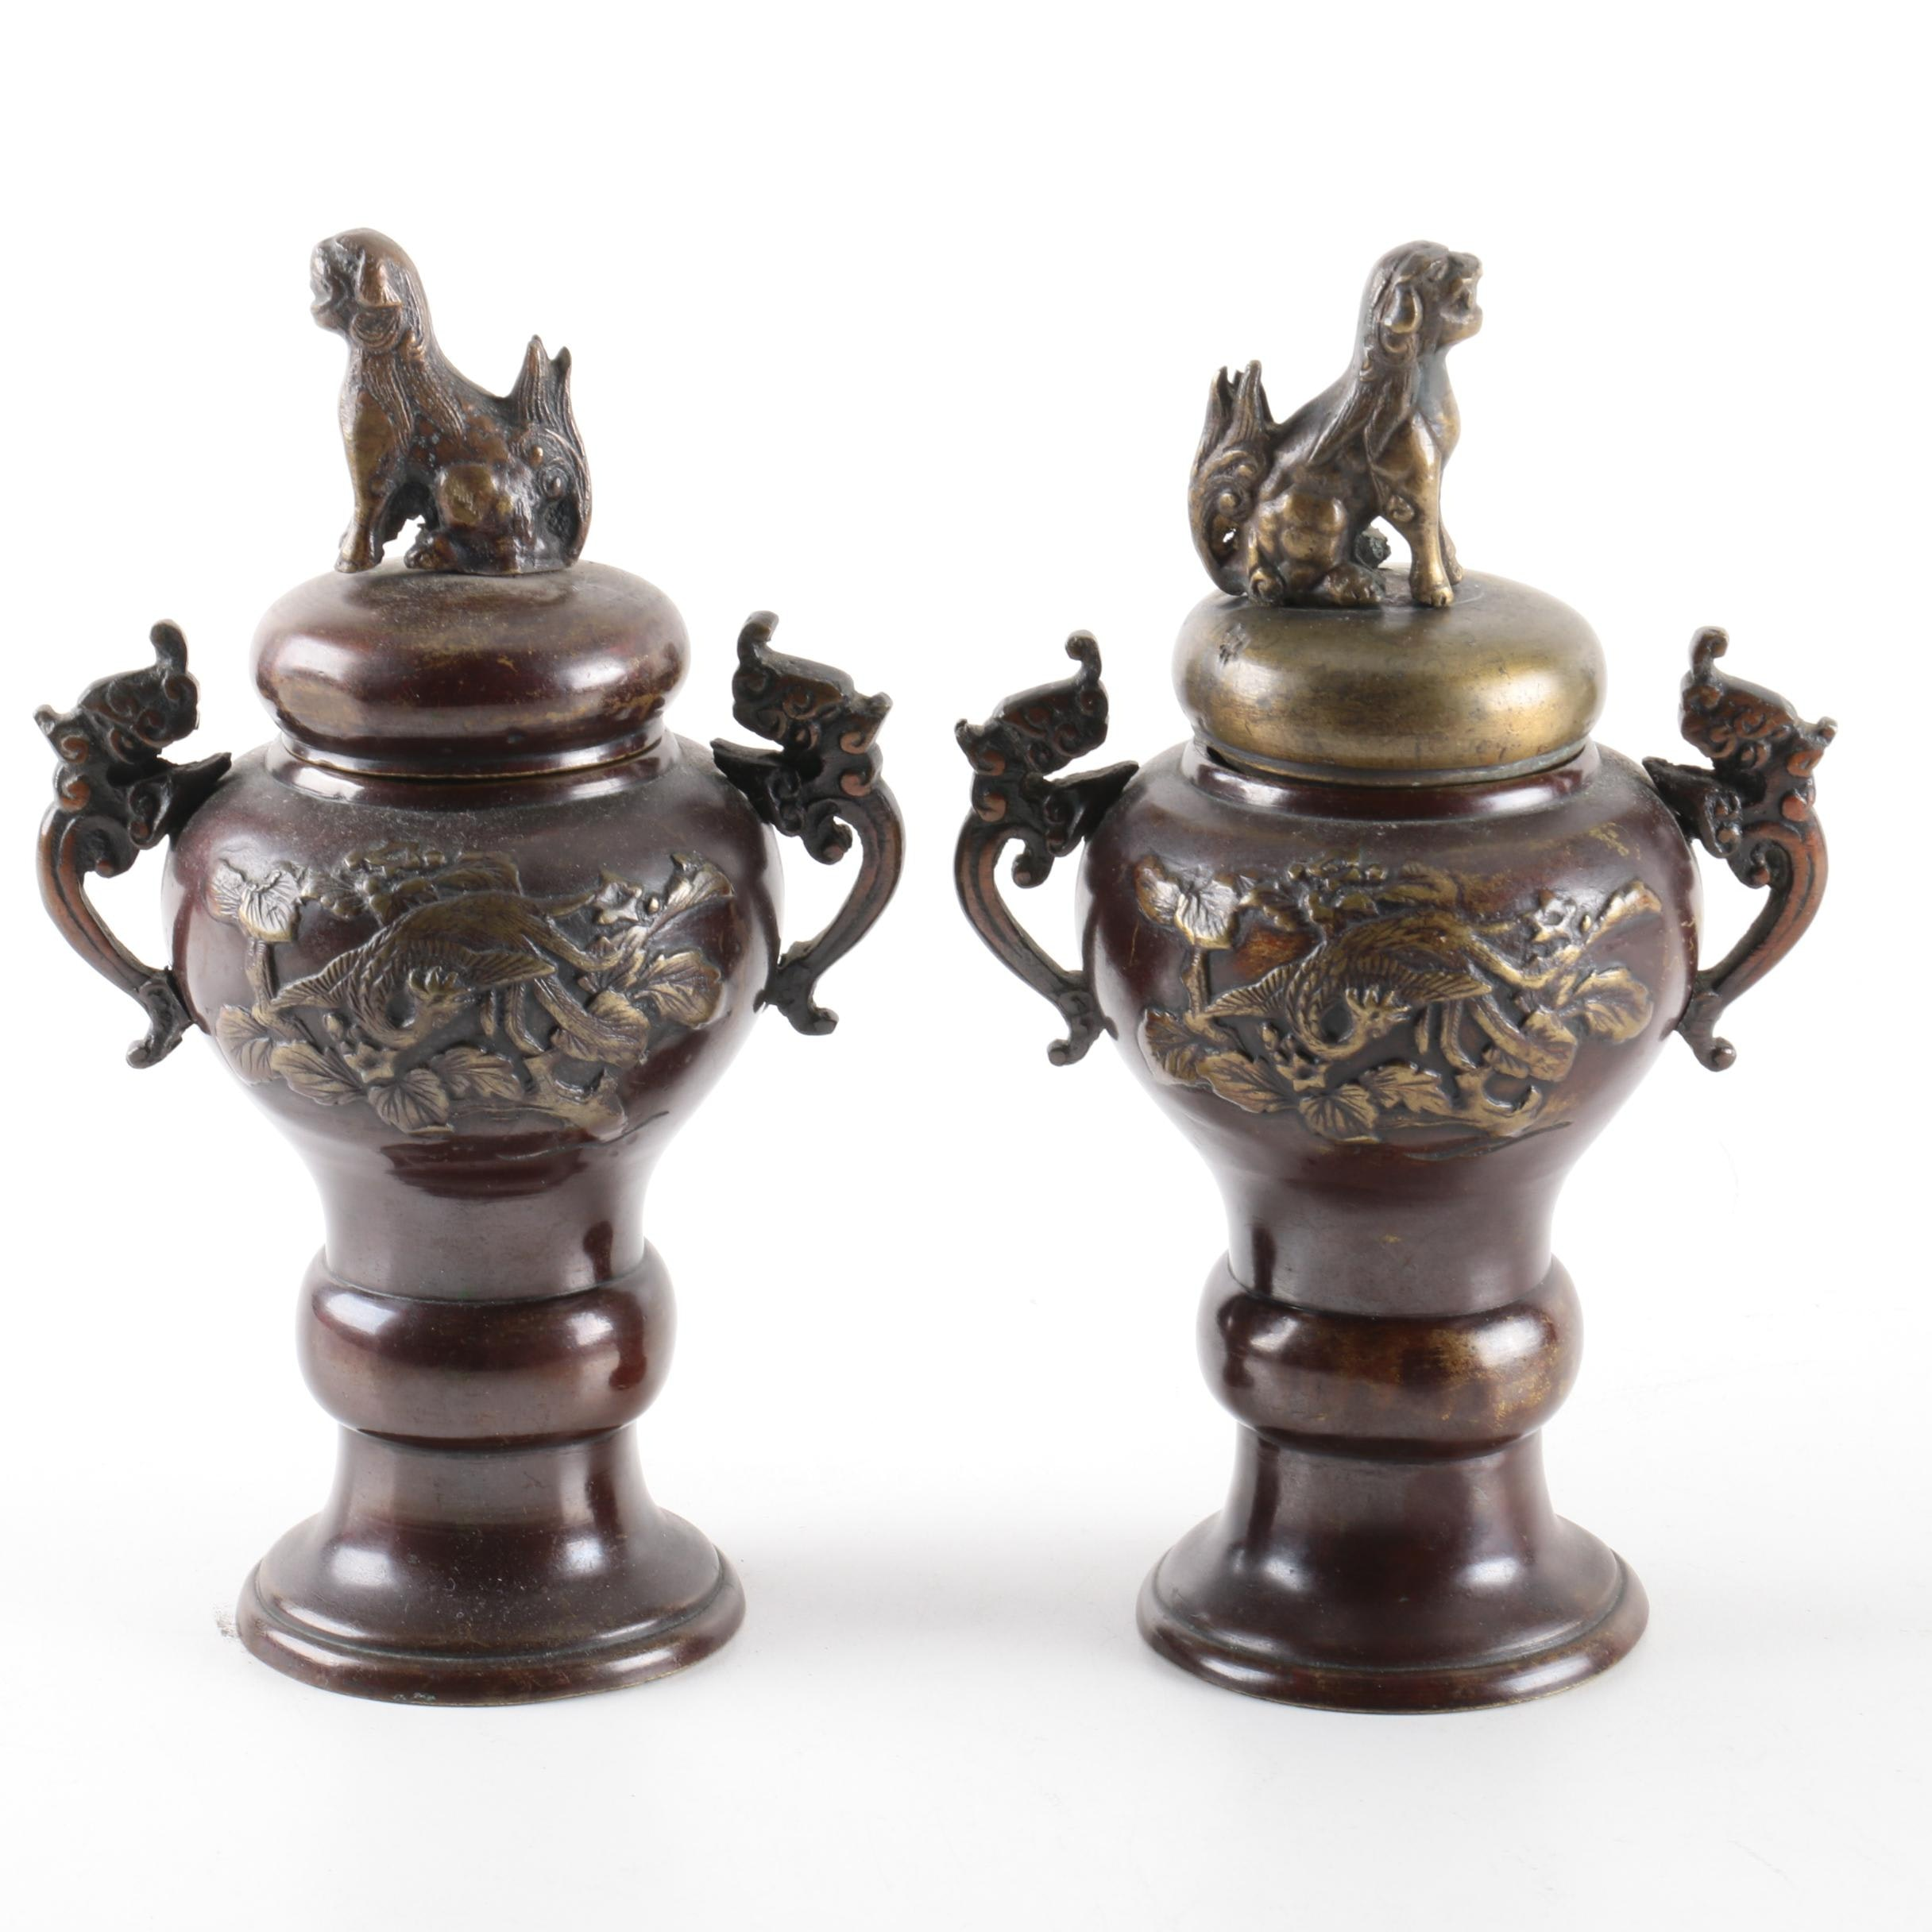 Pair of Chinese Brass Lidded Urns